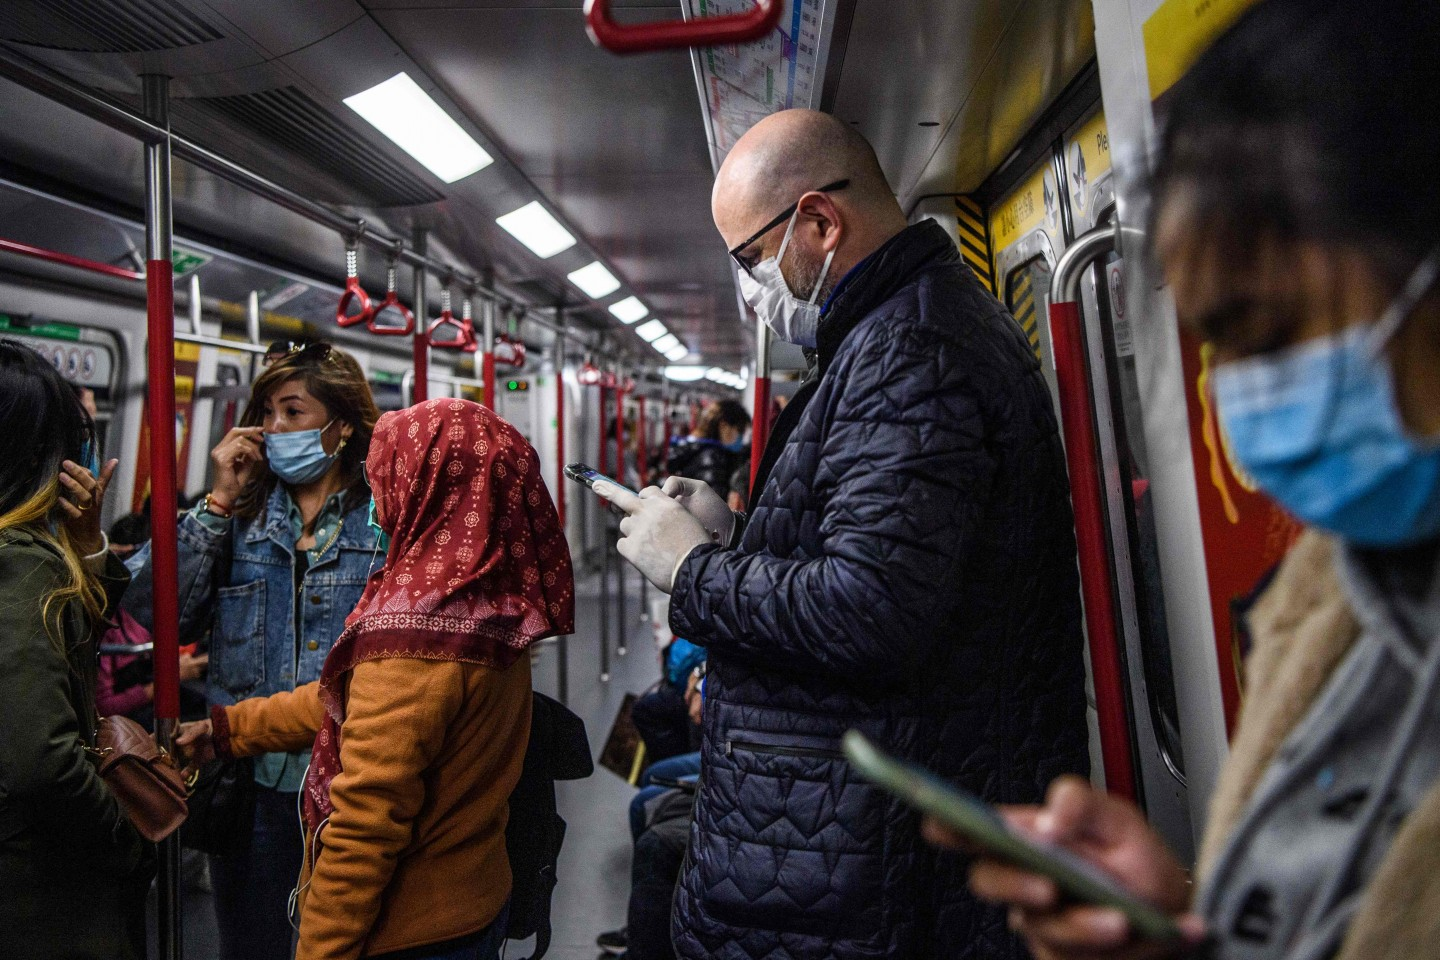 Hong Konger's awareness of virus outbreaks has greatly increased since the 2003 SARS epidemic. Pictured here are passengers wearing face masks while travelling on a MTR in Hong Kong on 27 January 2020 as a preventative measure following the coronavirus outbreak which began in the Chinese city of Wuhan. (Anthony Wallace/AFP)